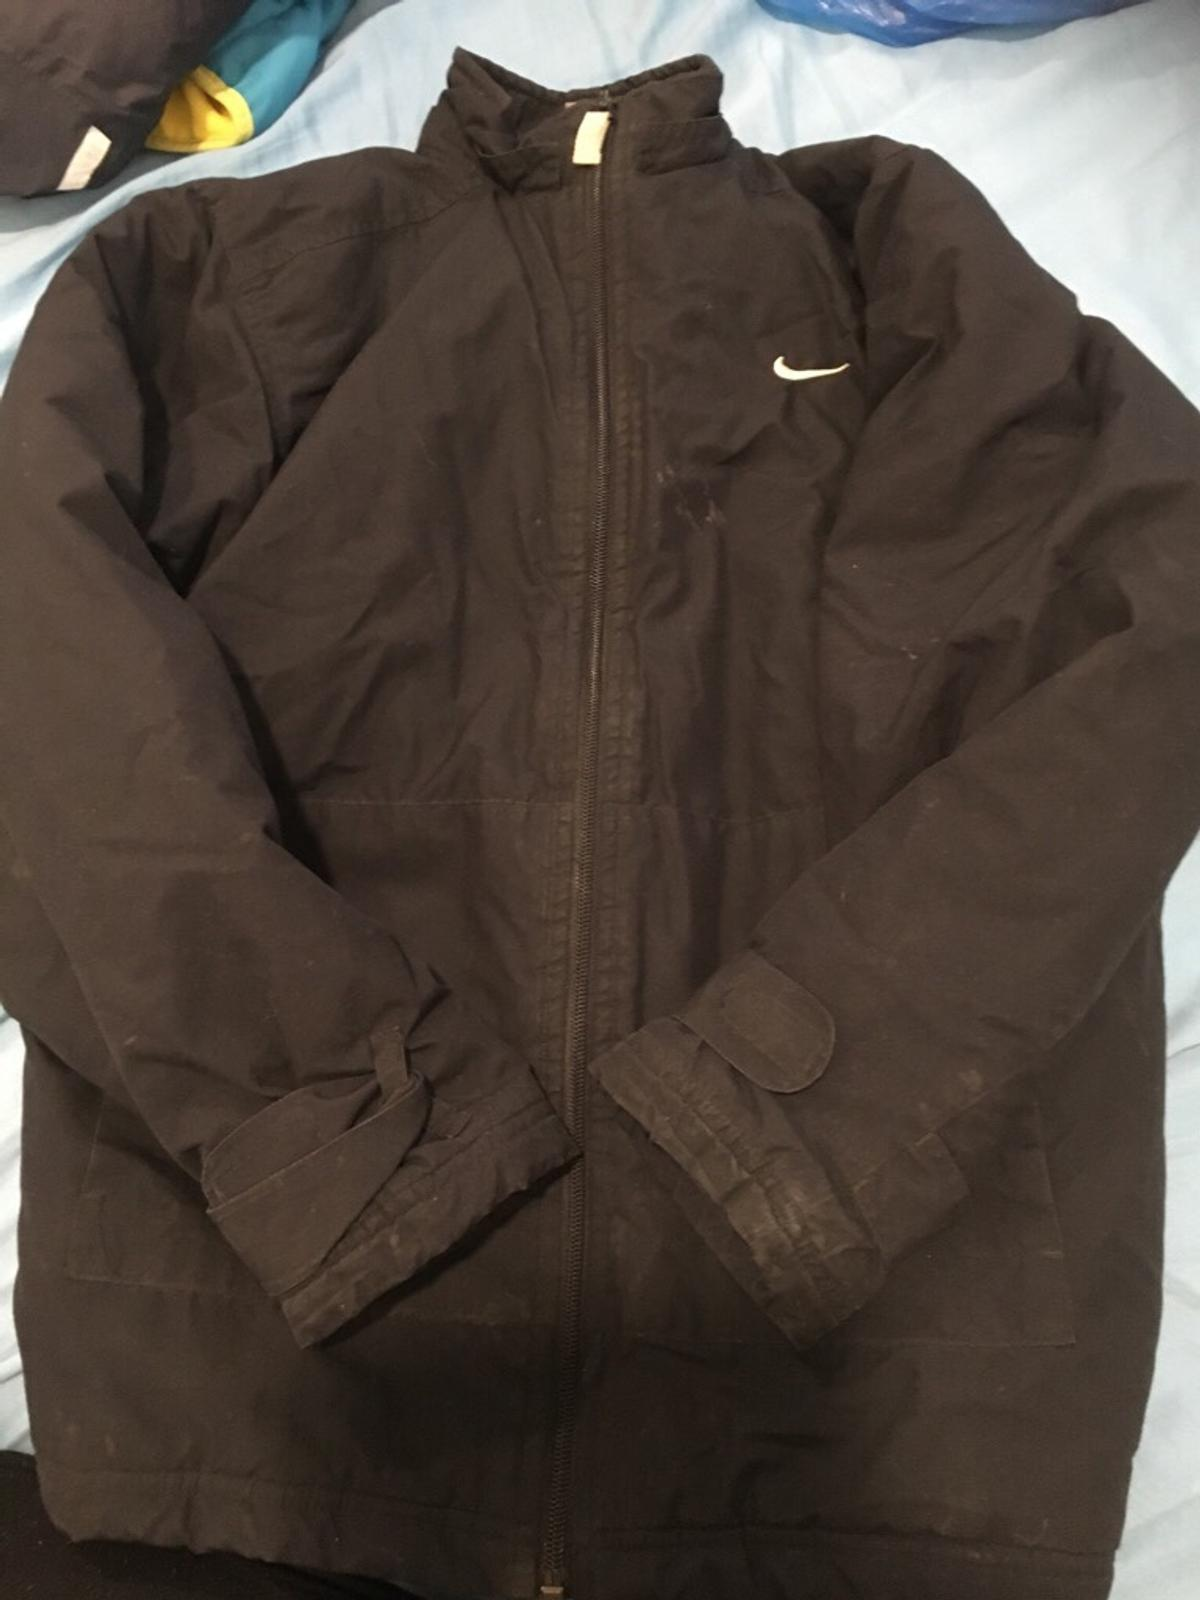 Winterjacken Main In Für Am 60326 Gr152 Nike Frankfurt 10 CrshtQdx